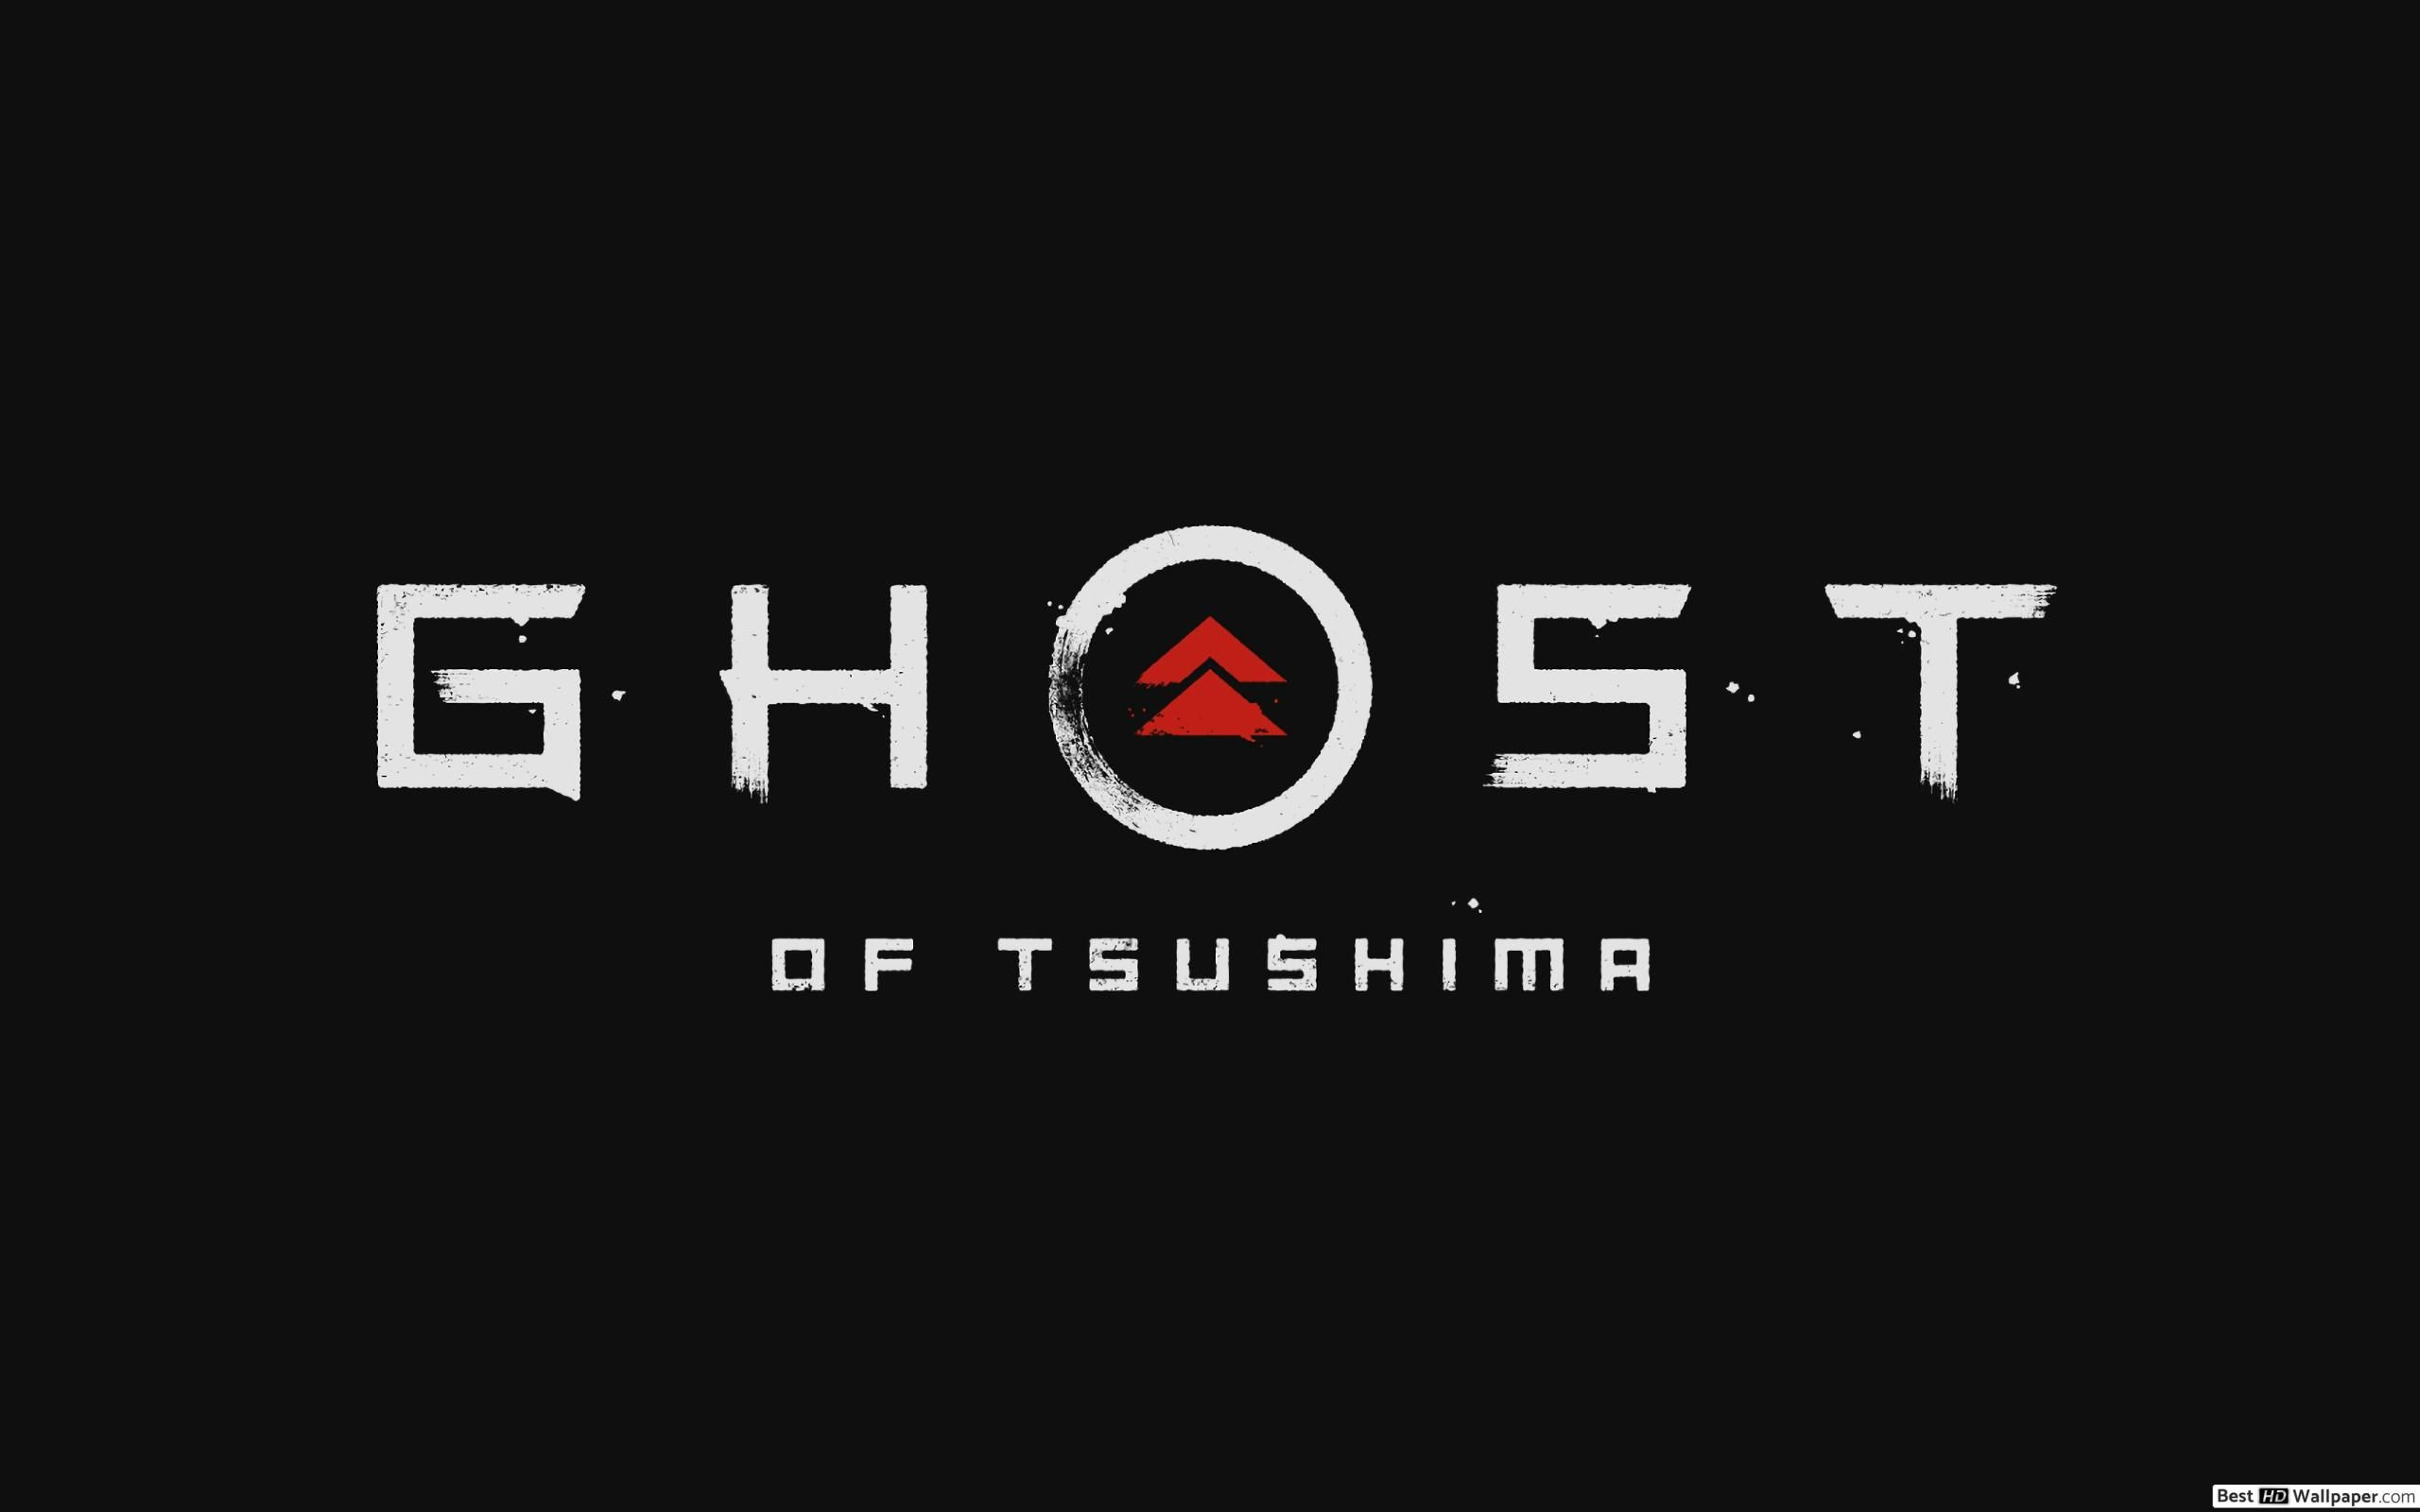 Ghost of Tsushima 2019 LOGO HD wallpapers download